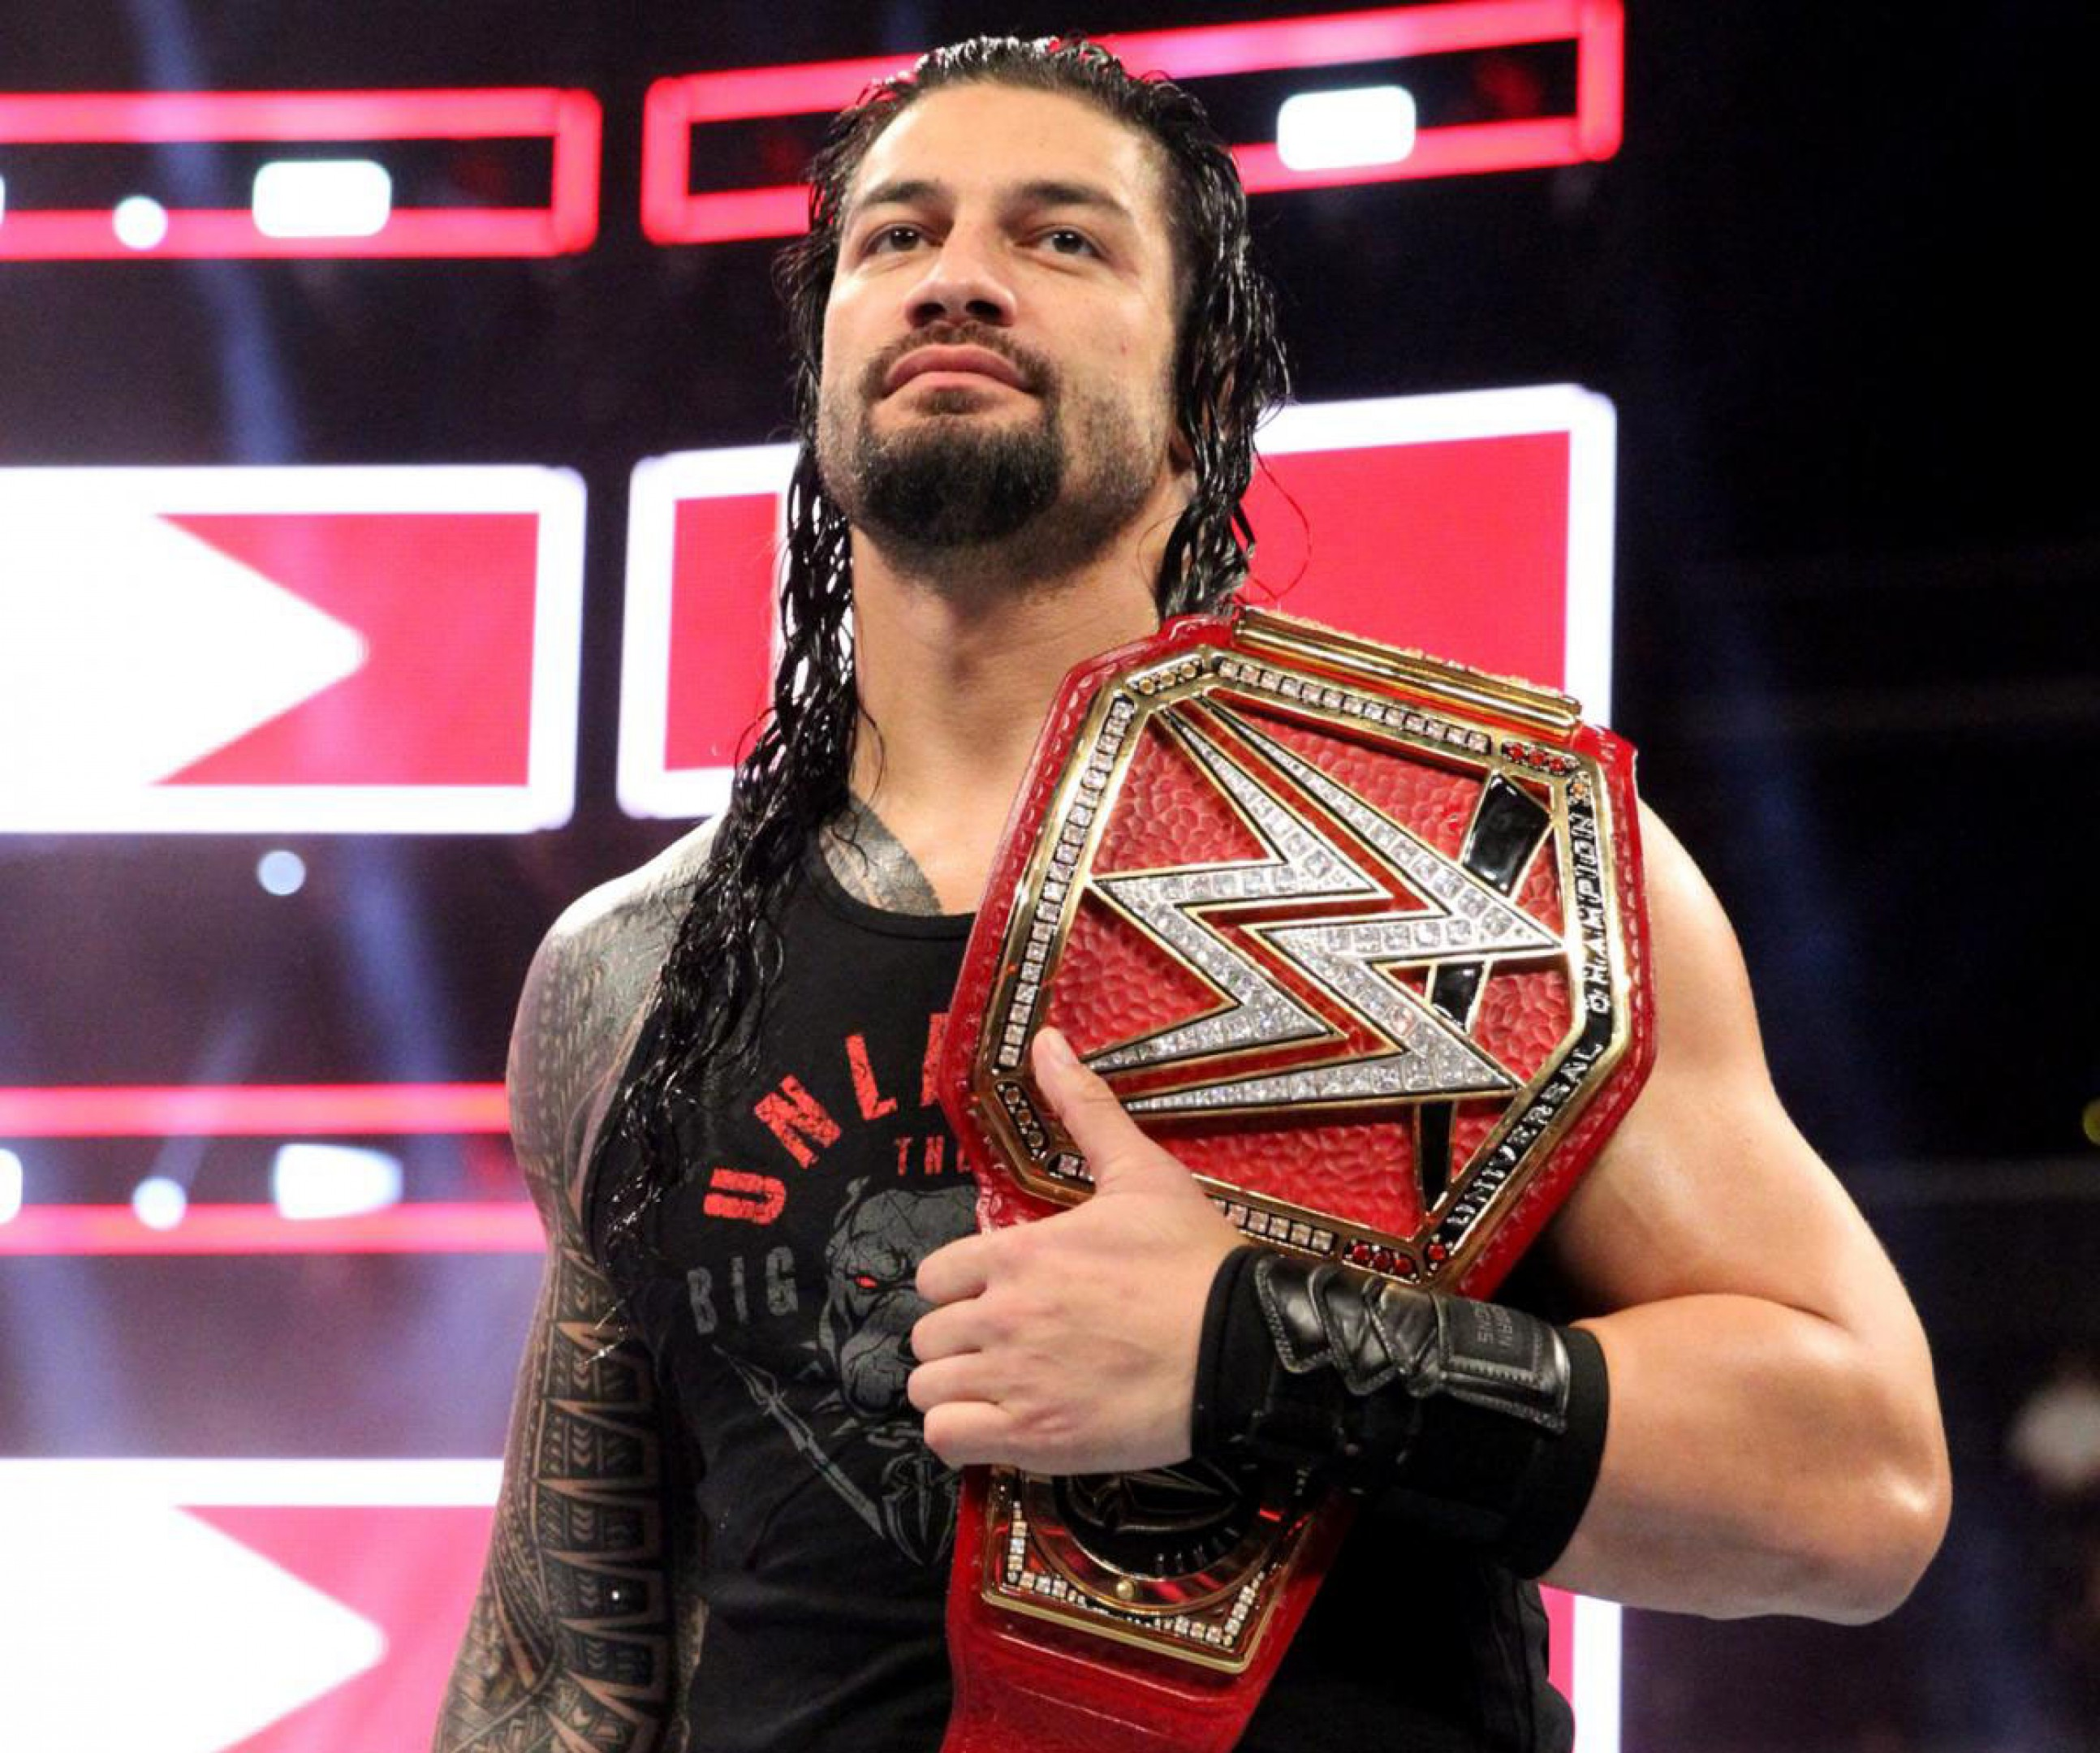 Wwe Universal Champion Roman Reigns 2018 4k Freshwidewallpapers